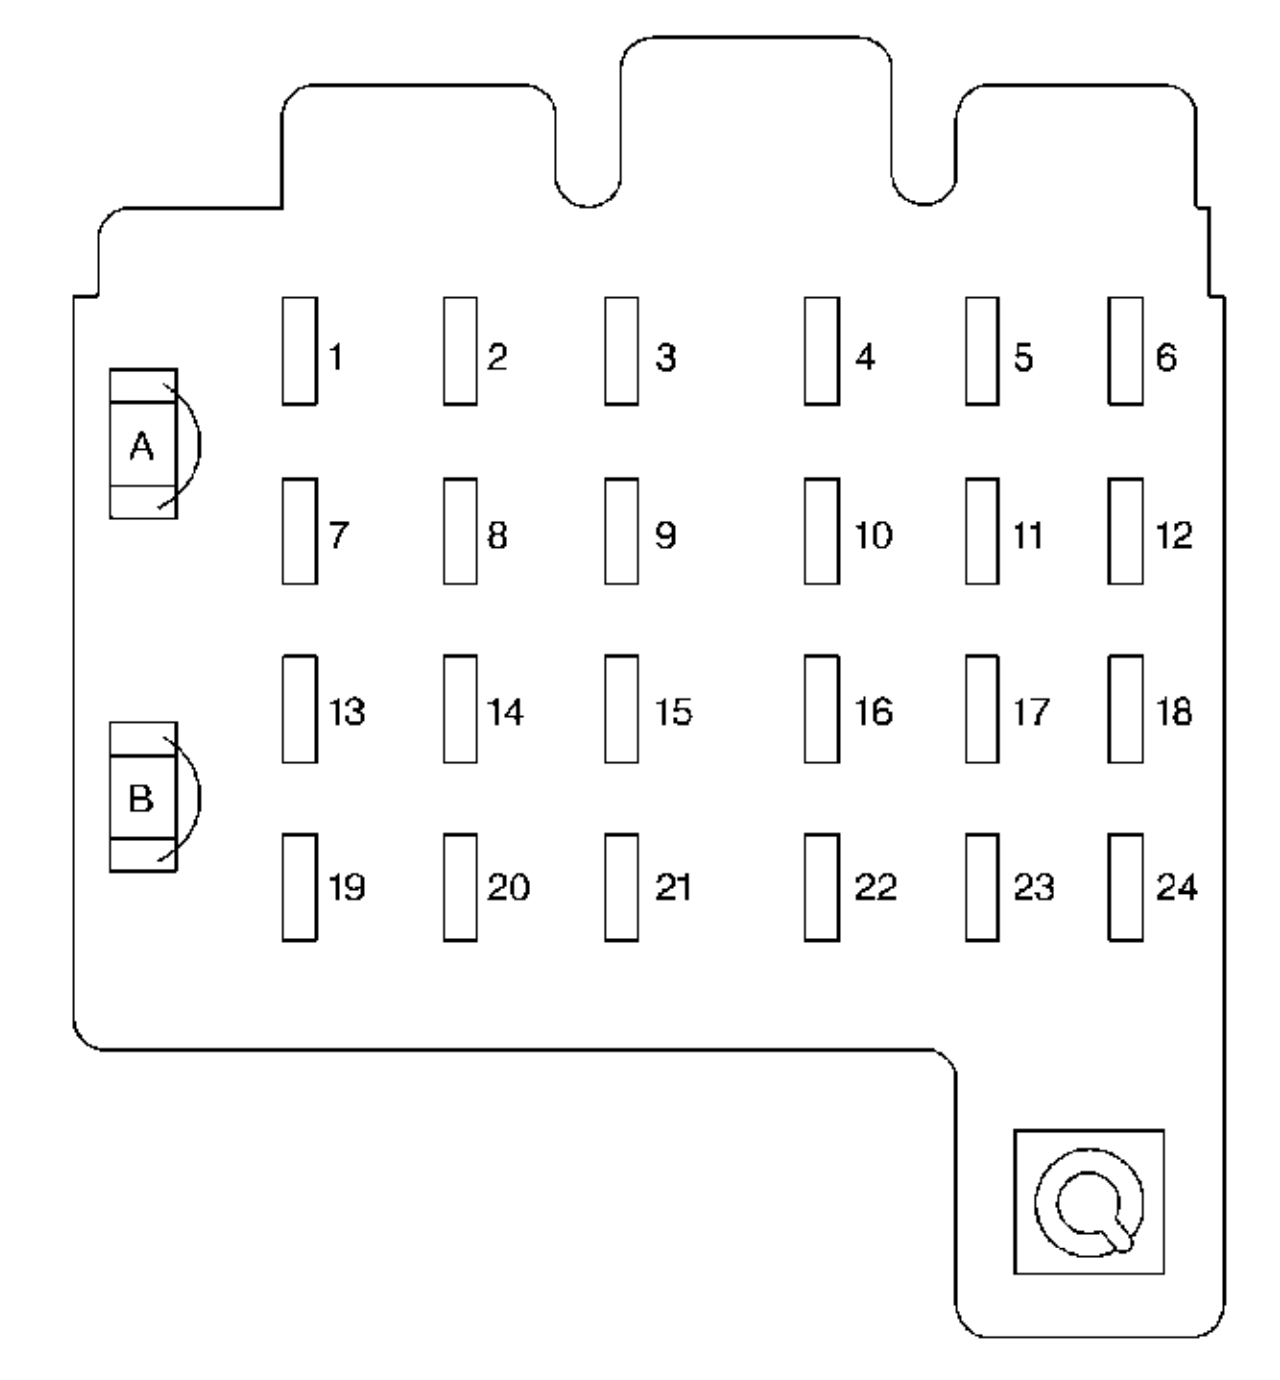 hight resolution of fuse diagram 2006 gmc sierra 2500hd wiring library1990 chevy silverado fuse box diagram detailed schematics diagram